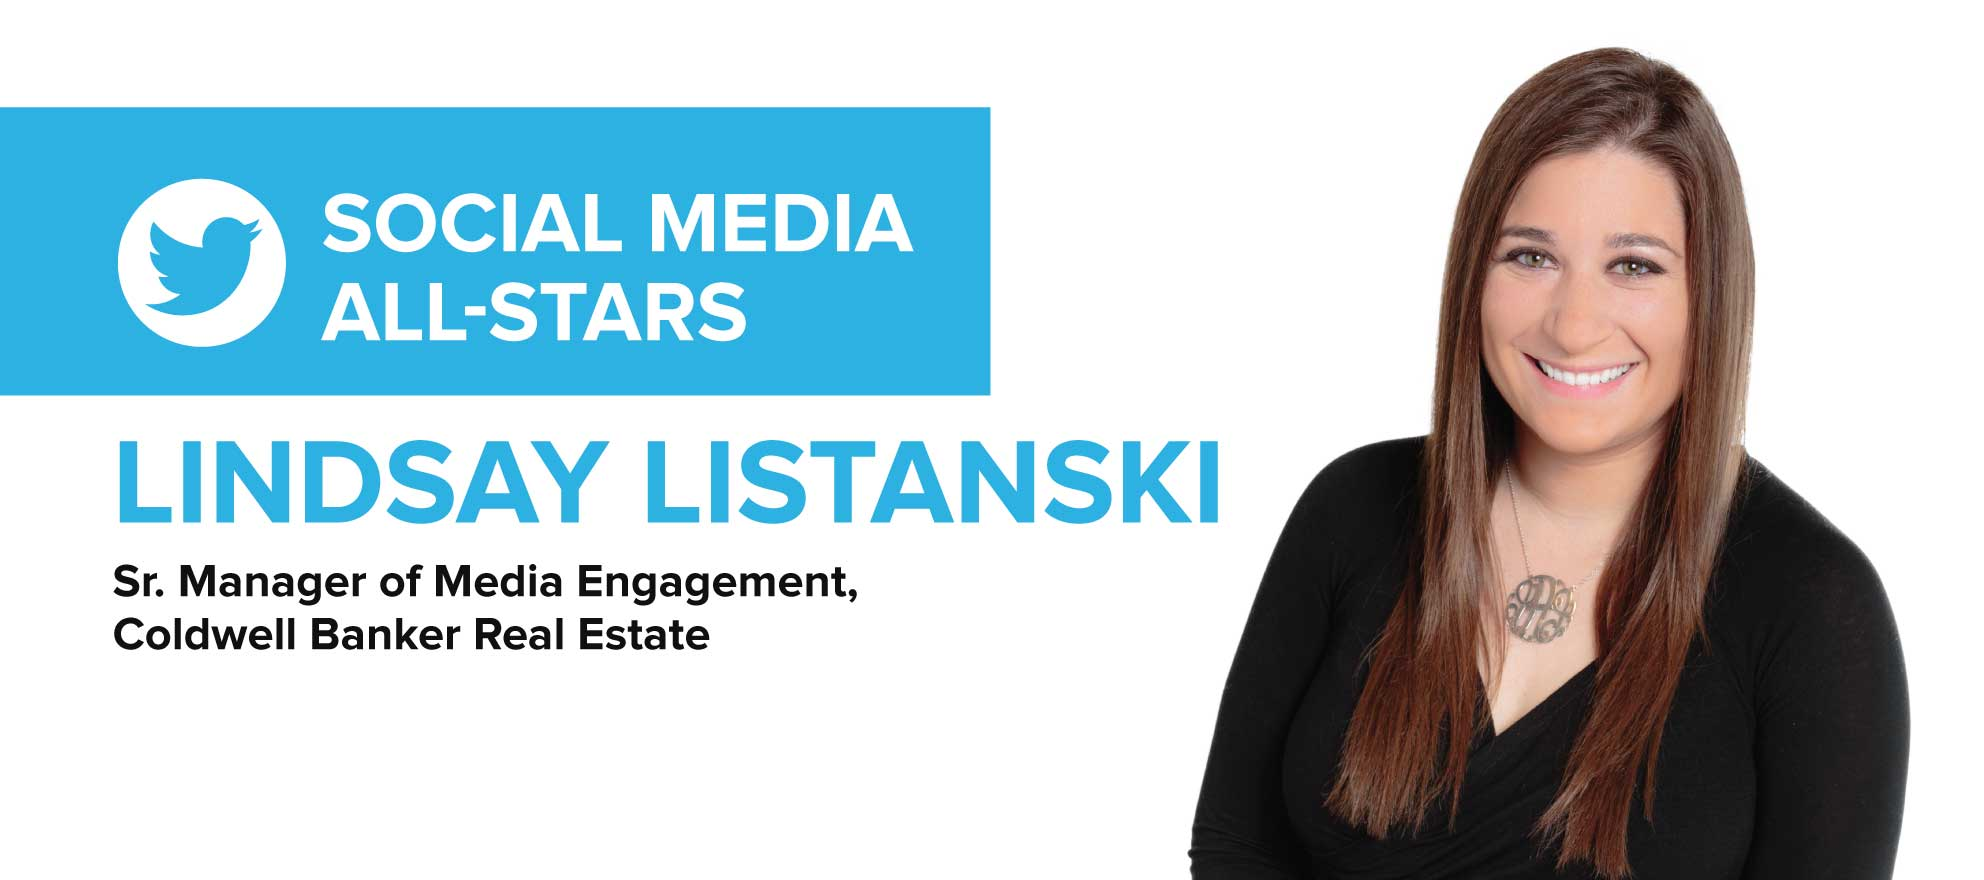 Lindsay Listanski: 'Social media makes the world a smaller place'